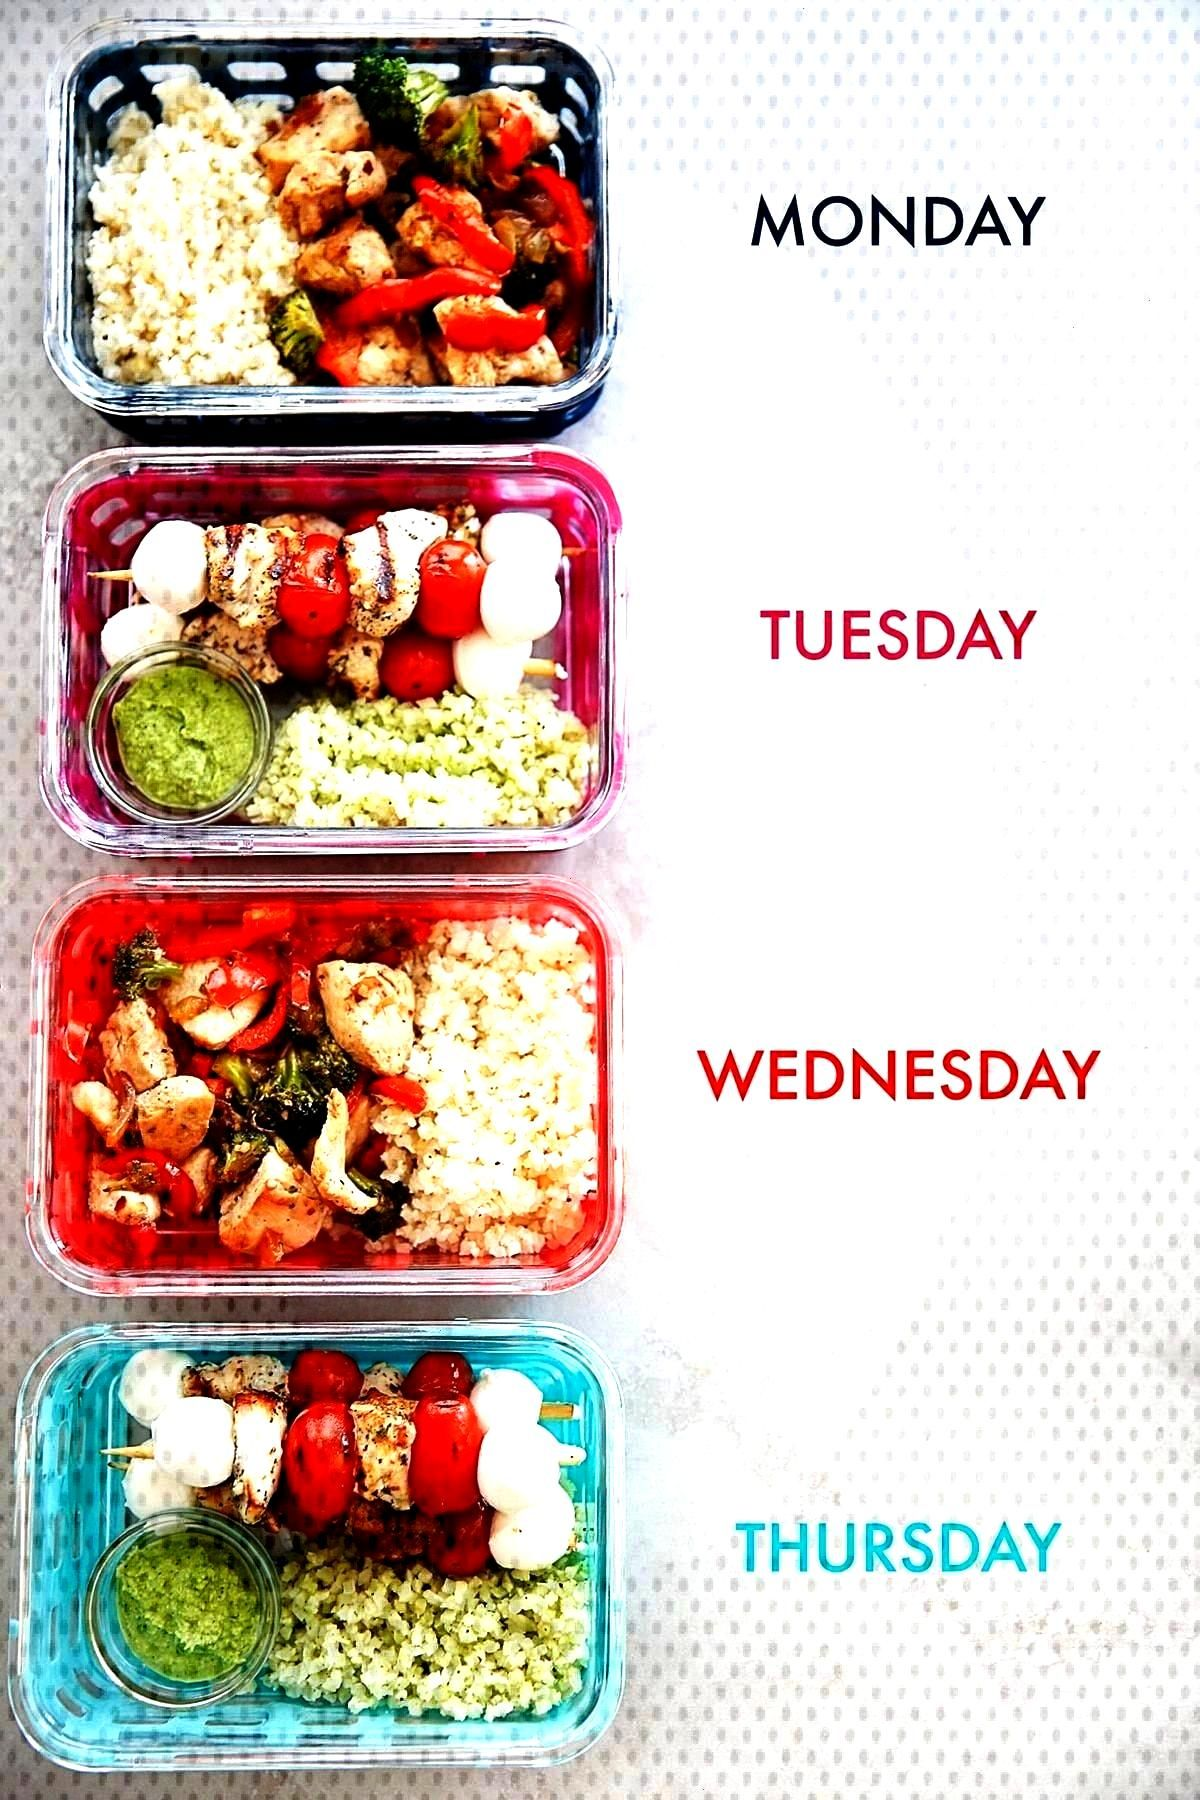 8 Budget Friendly Lunches - Lexis Clean Kitchen - Healthy lunch ideas for work -Meal Prep 8 Budge